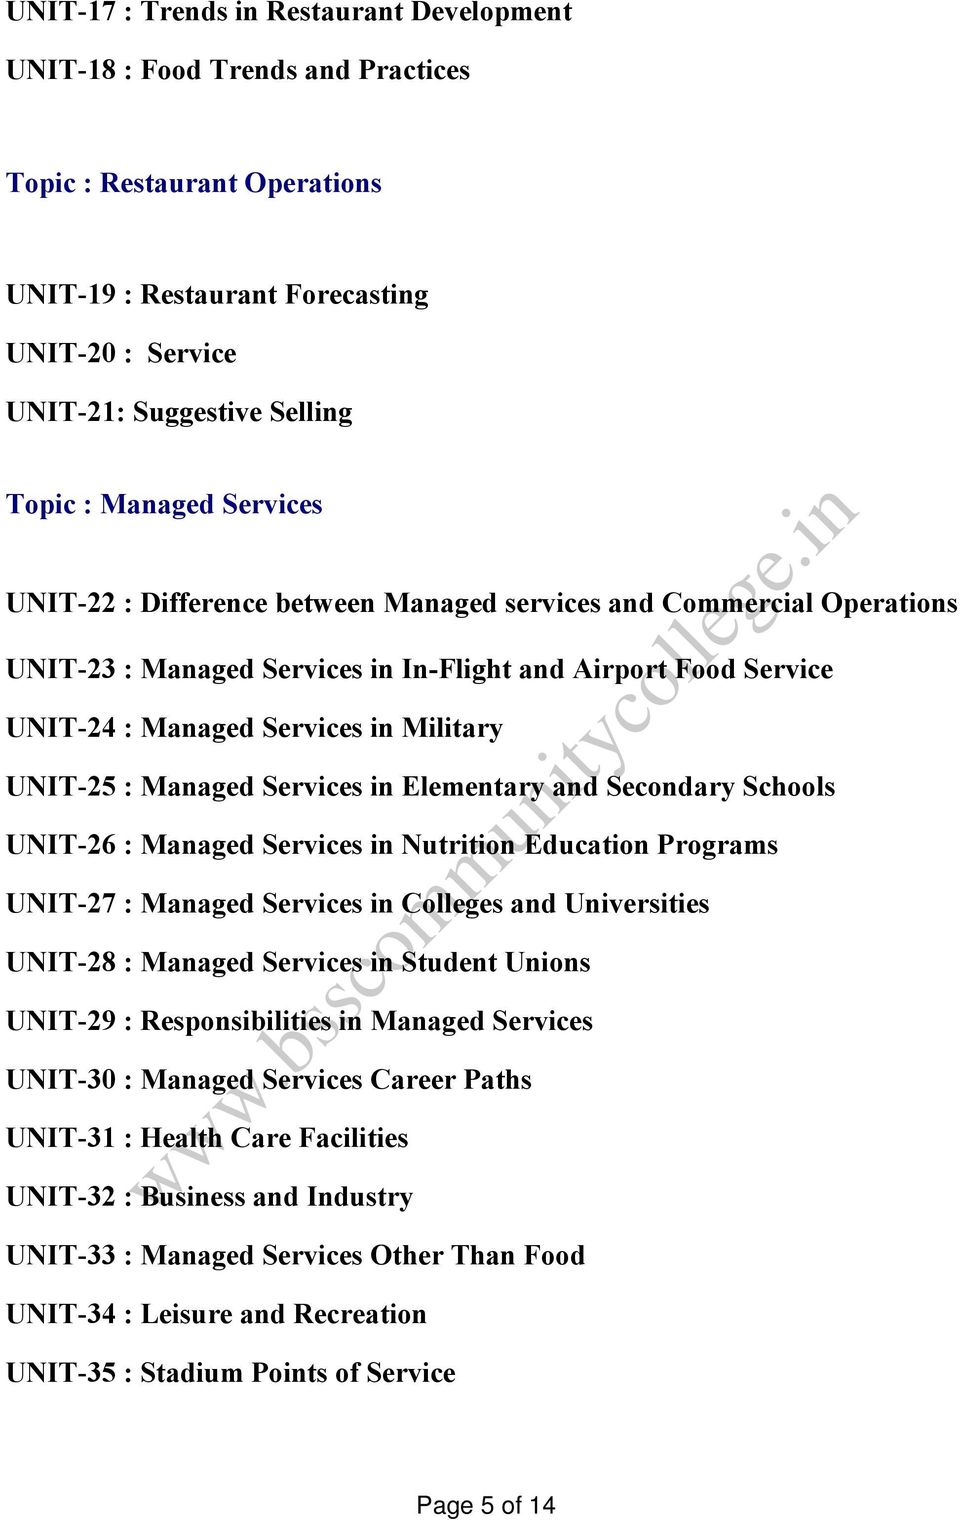 UNIT-25 : Managed Services in Elementary and Secondary Schools UNIT-26 : Managed Services in Nutrition Education Programs UNIT-27 : Managed Services in Colleges and Universities UNIT-28 : Managed